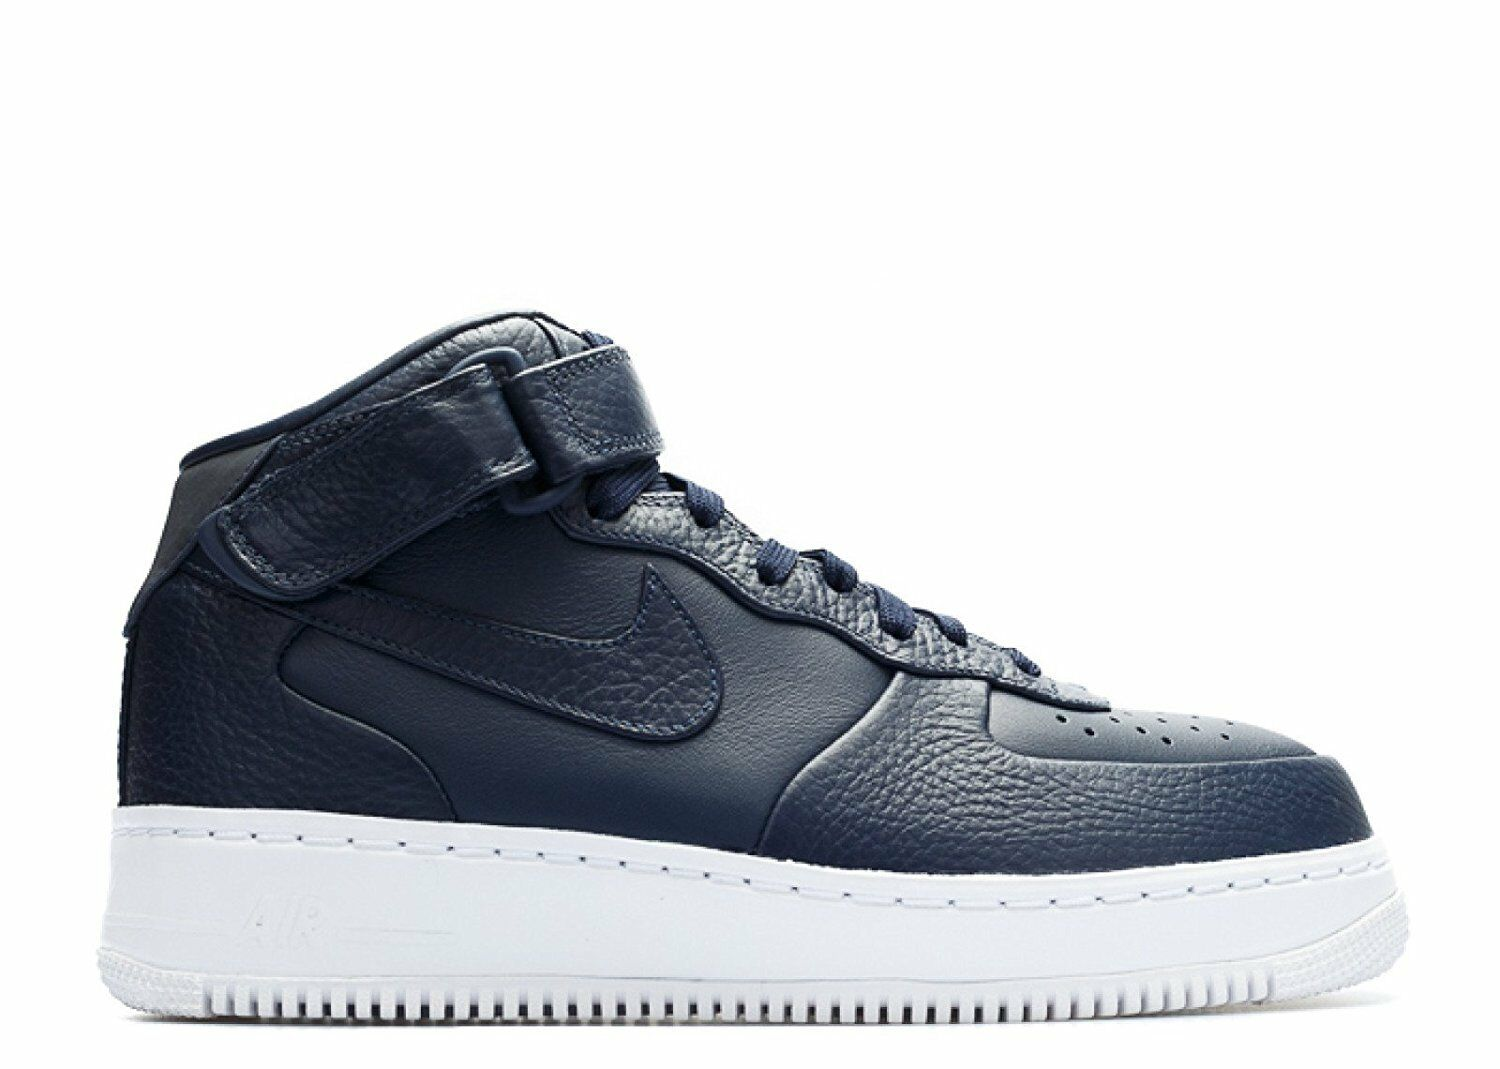 NEW NIKE NIKELAB AIR FORCE 1 MID PREMIUM OBSIDIAN/WHITE 819677-400 Price reduction Wild casual shoes